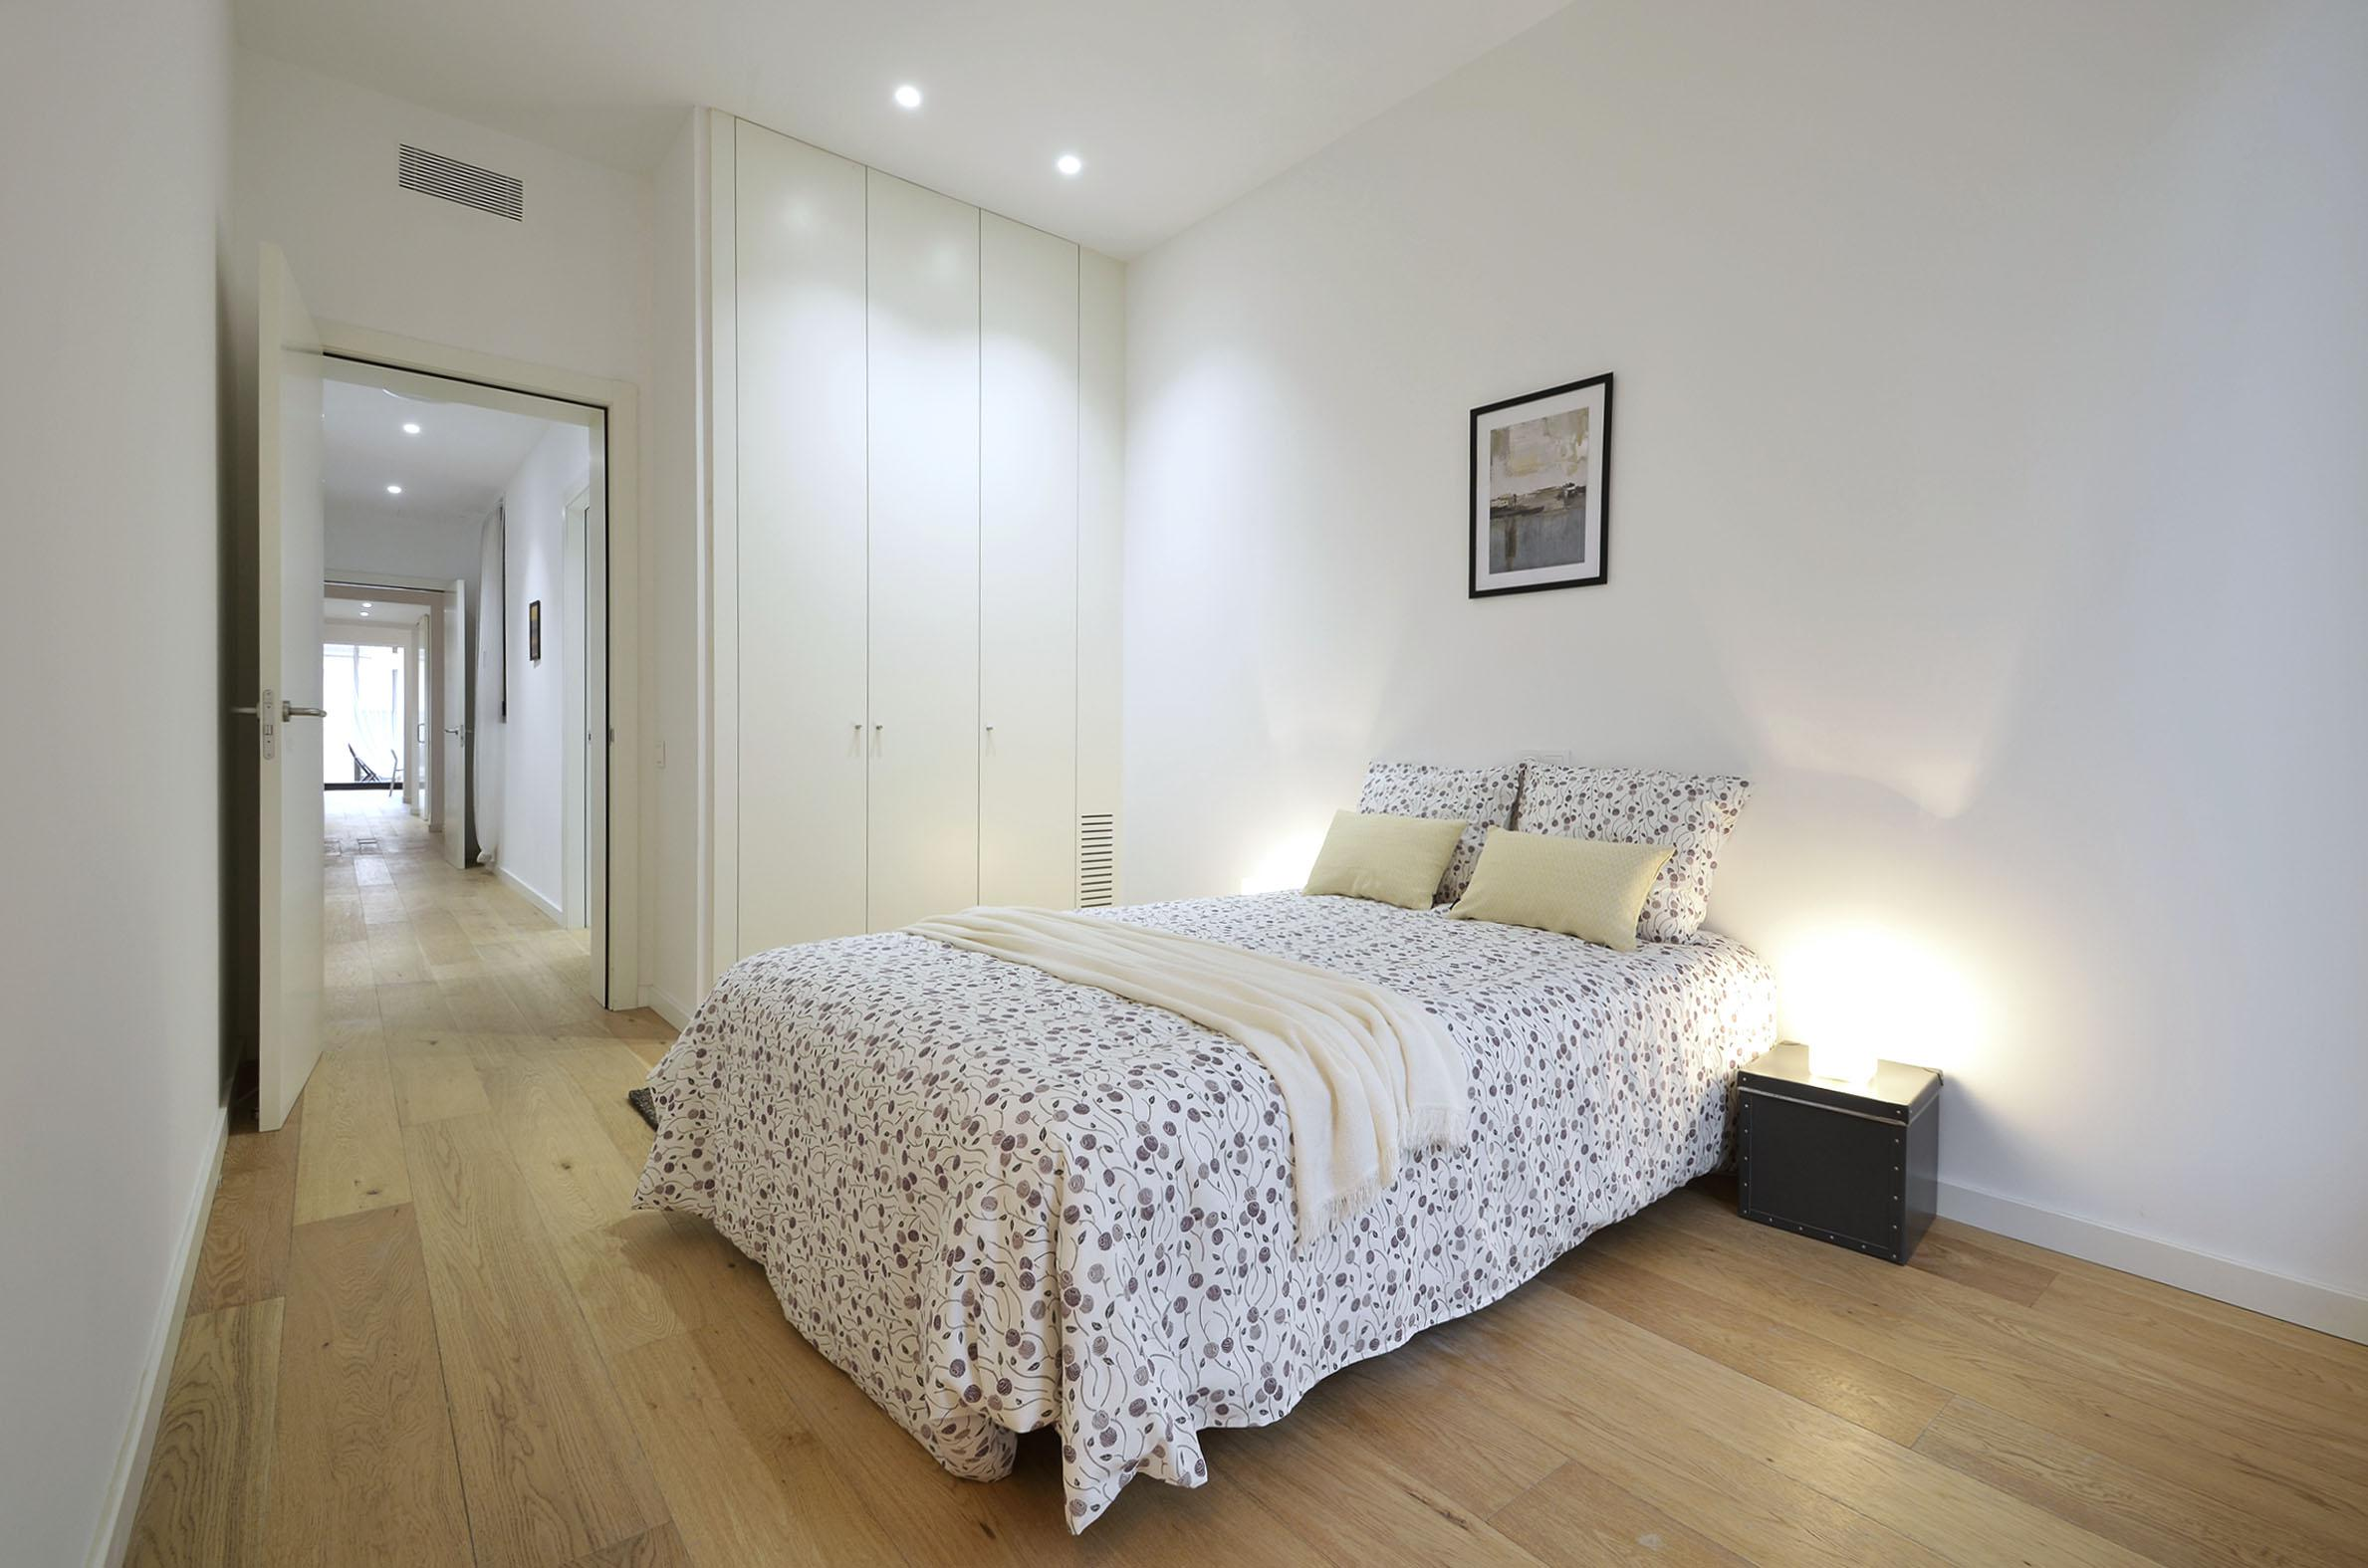 173872 Apartment for sale in Eixample, Old Left Eixample 17